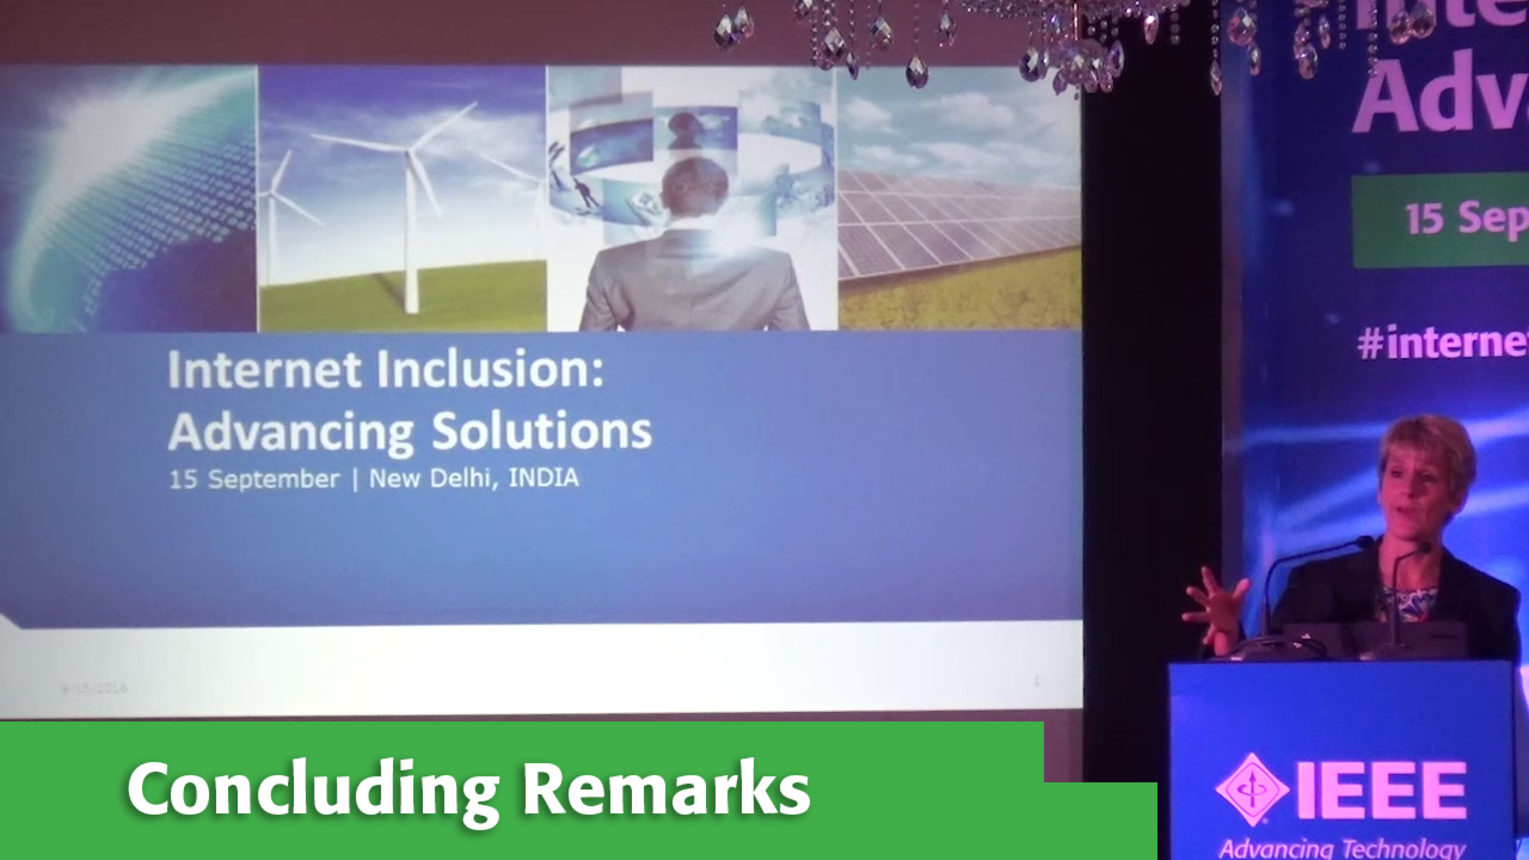 Concluding Remarks at Internet Inclusion: Advancing Solutions, Delhi, 2016